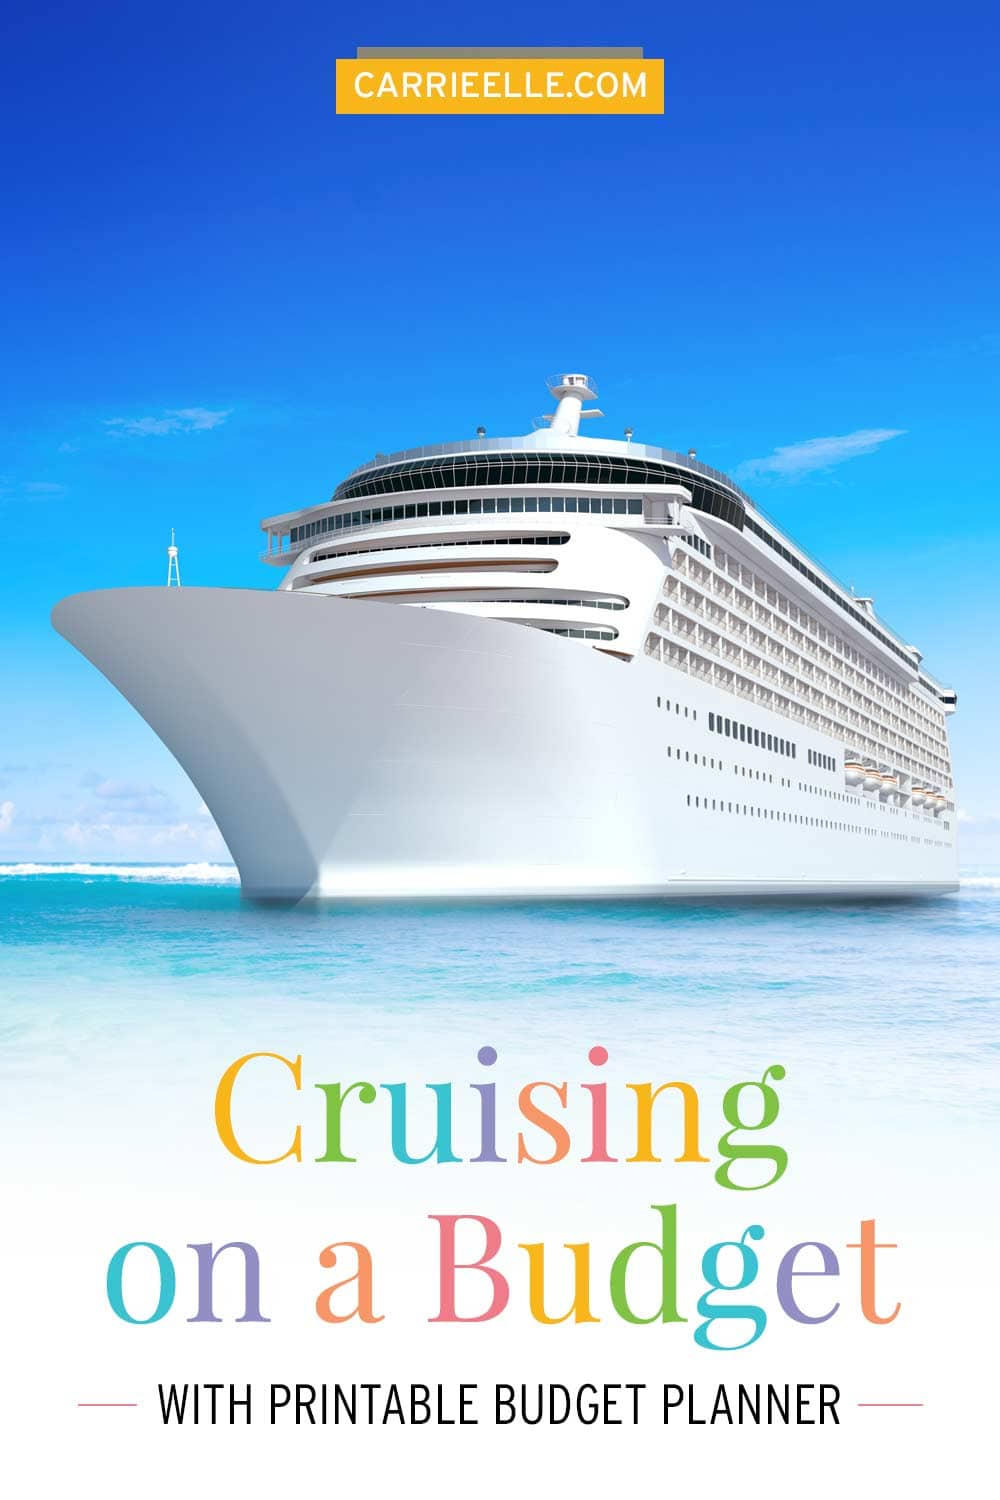 Budget Cruising Tips CarrieElle.com